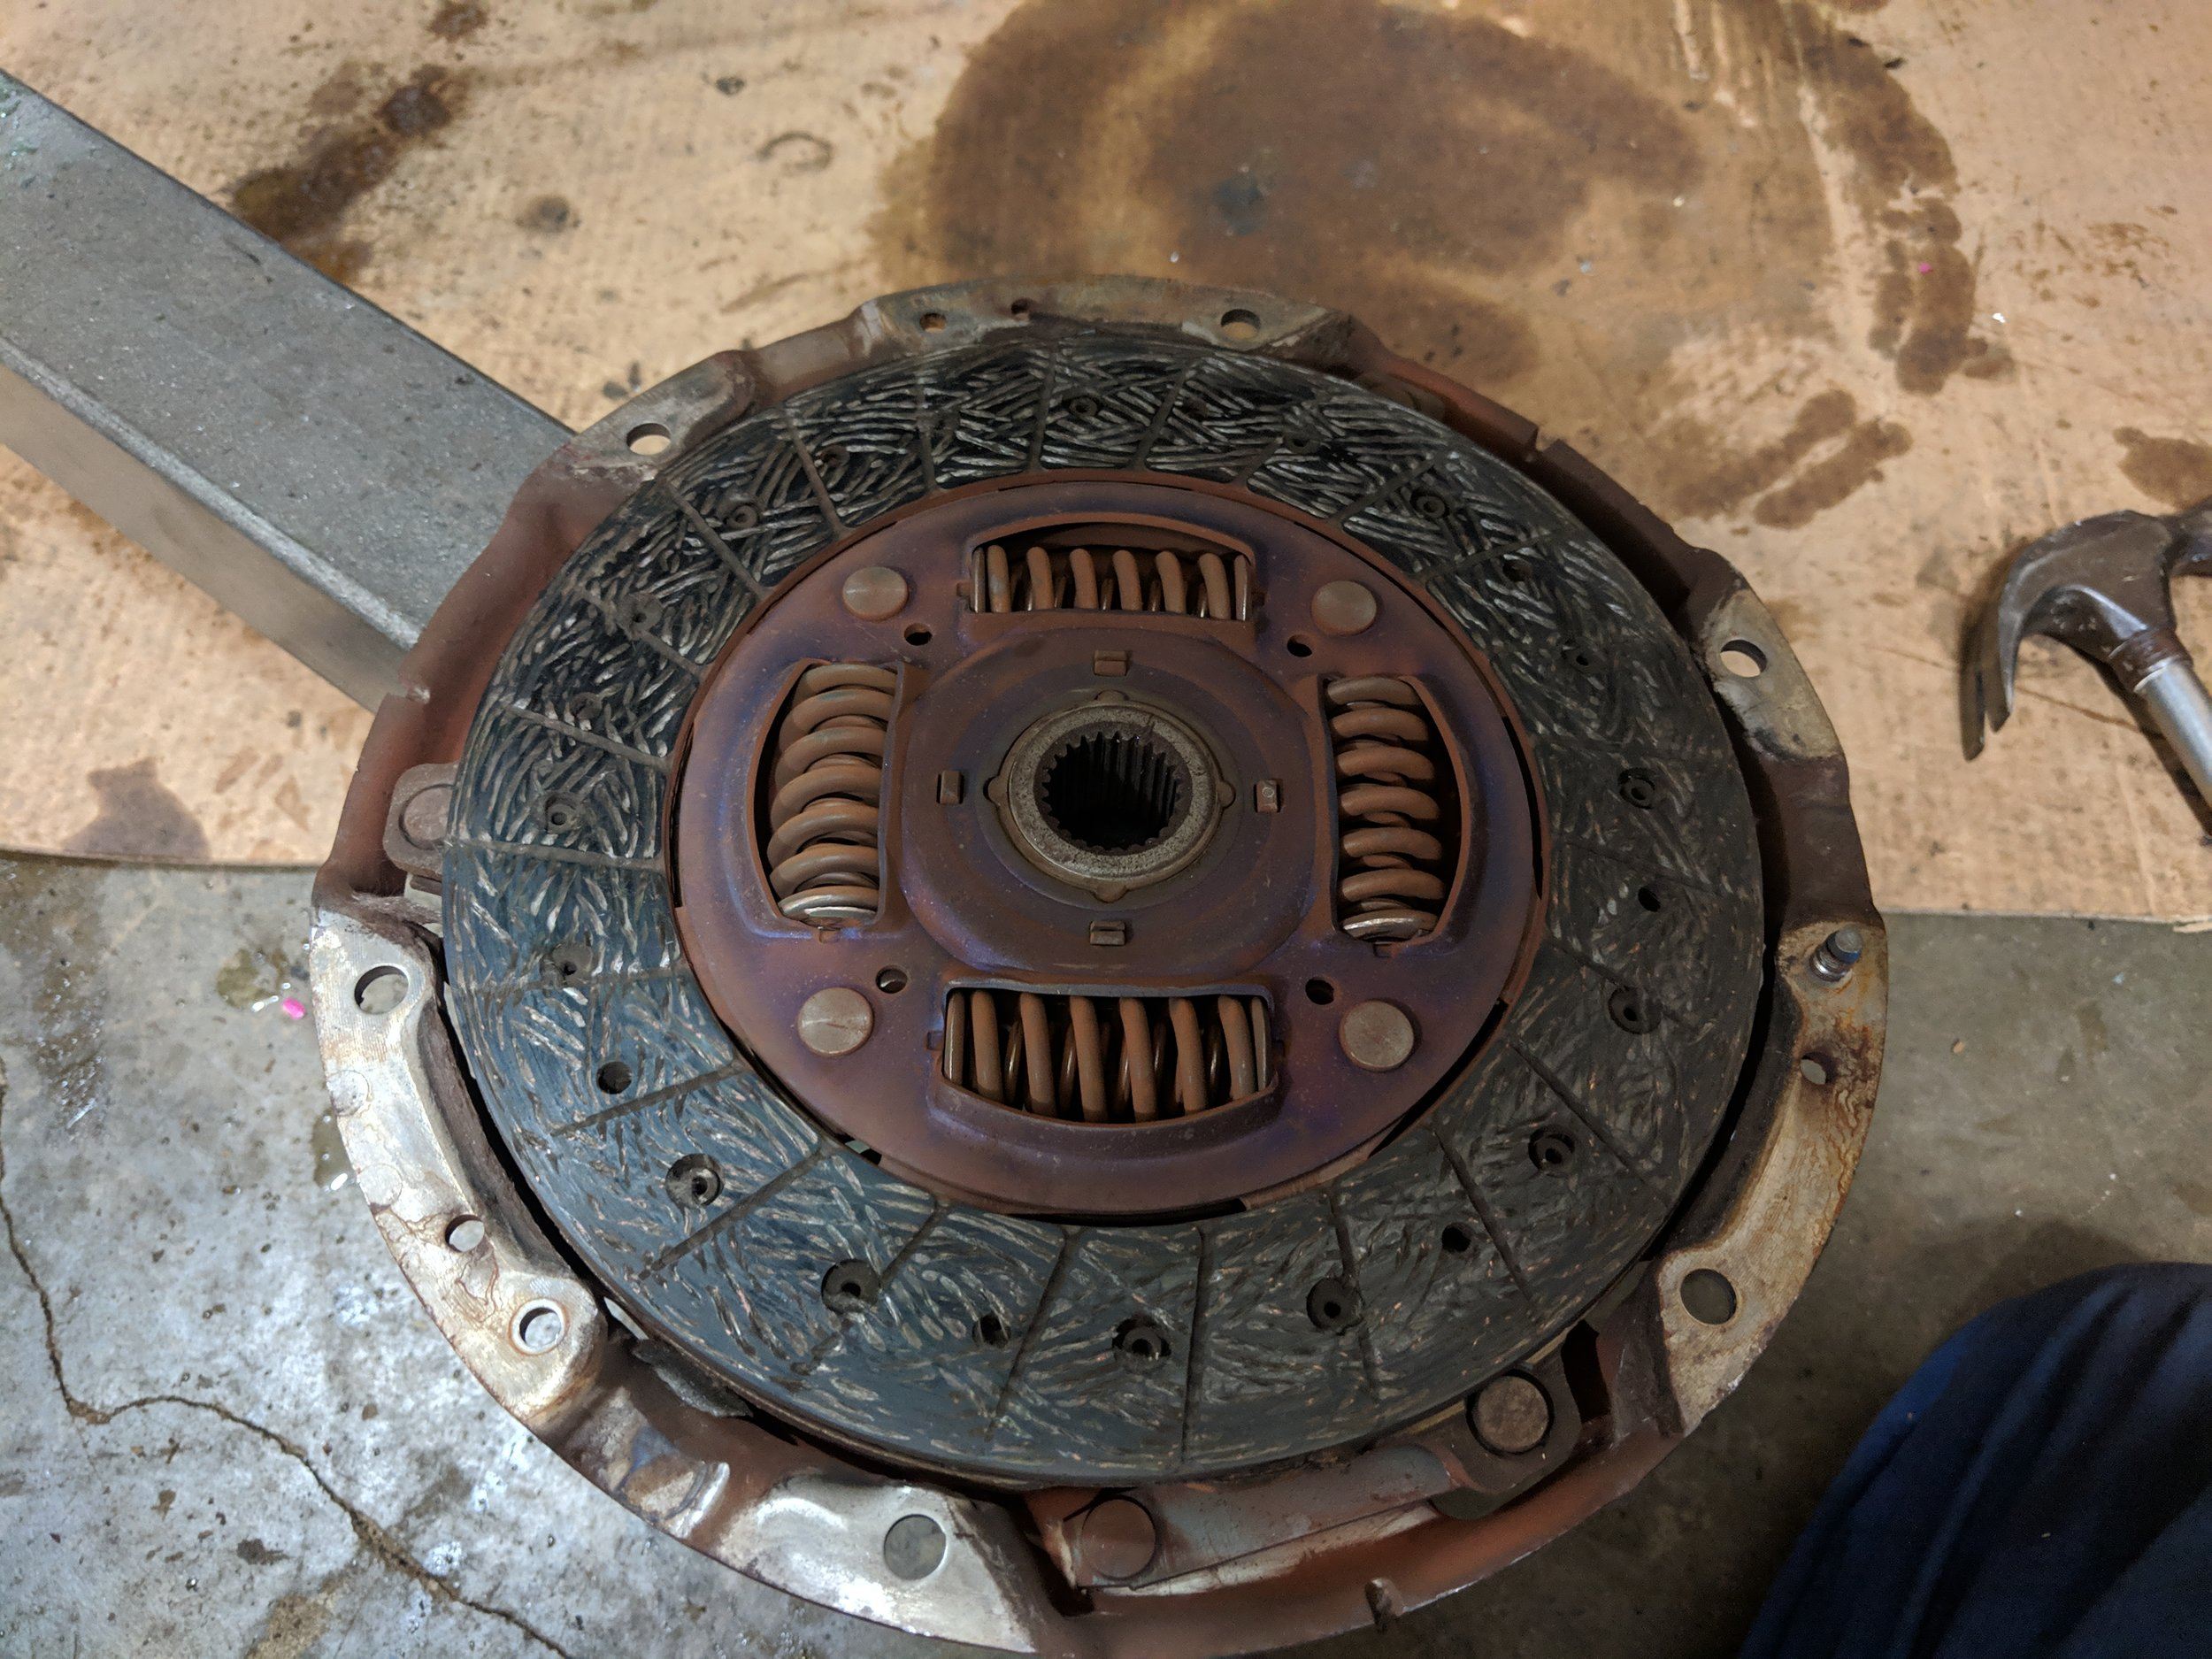 Old flywheel was just above the rivets. Ready to be replaced.